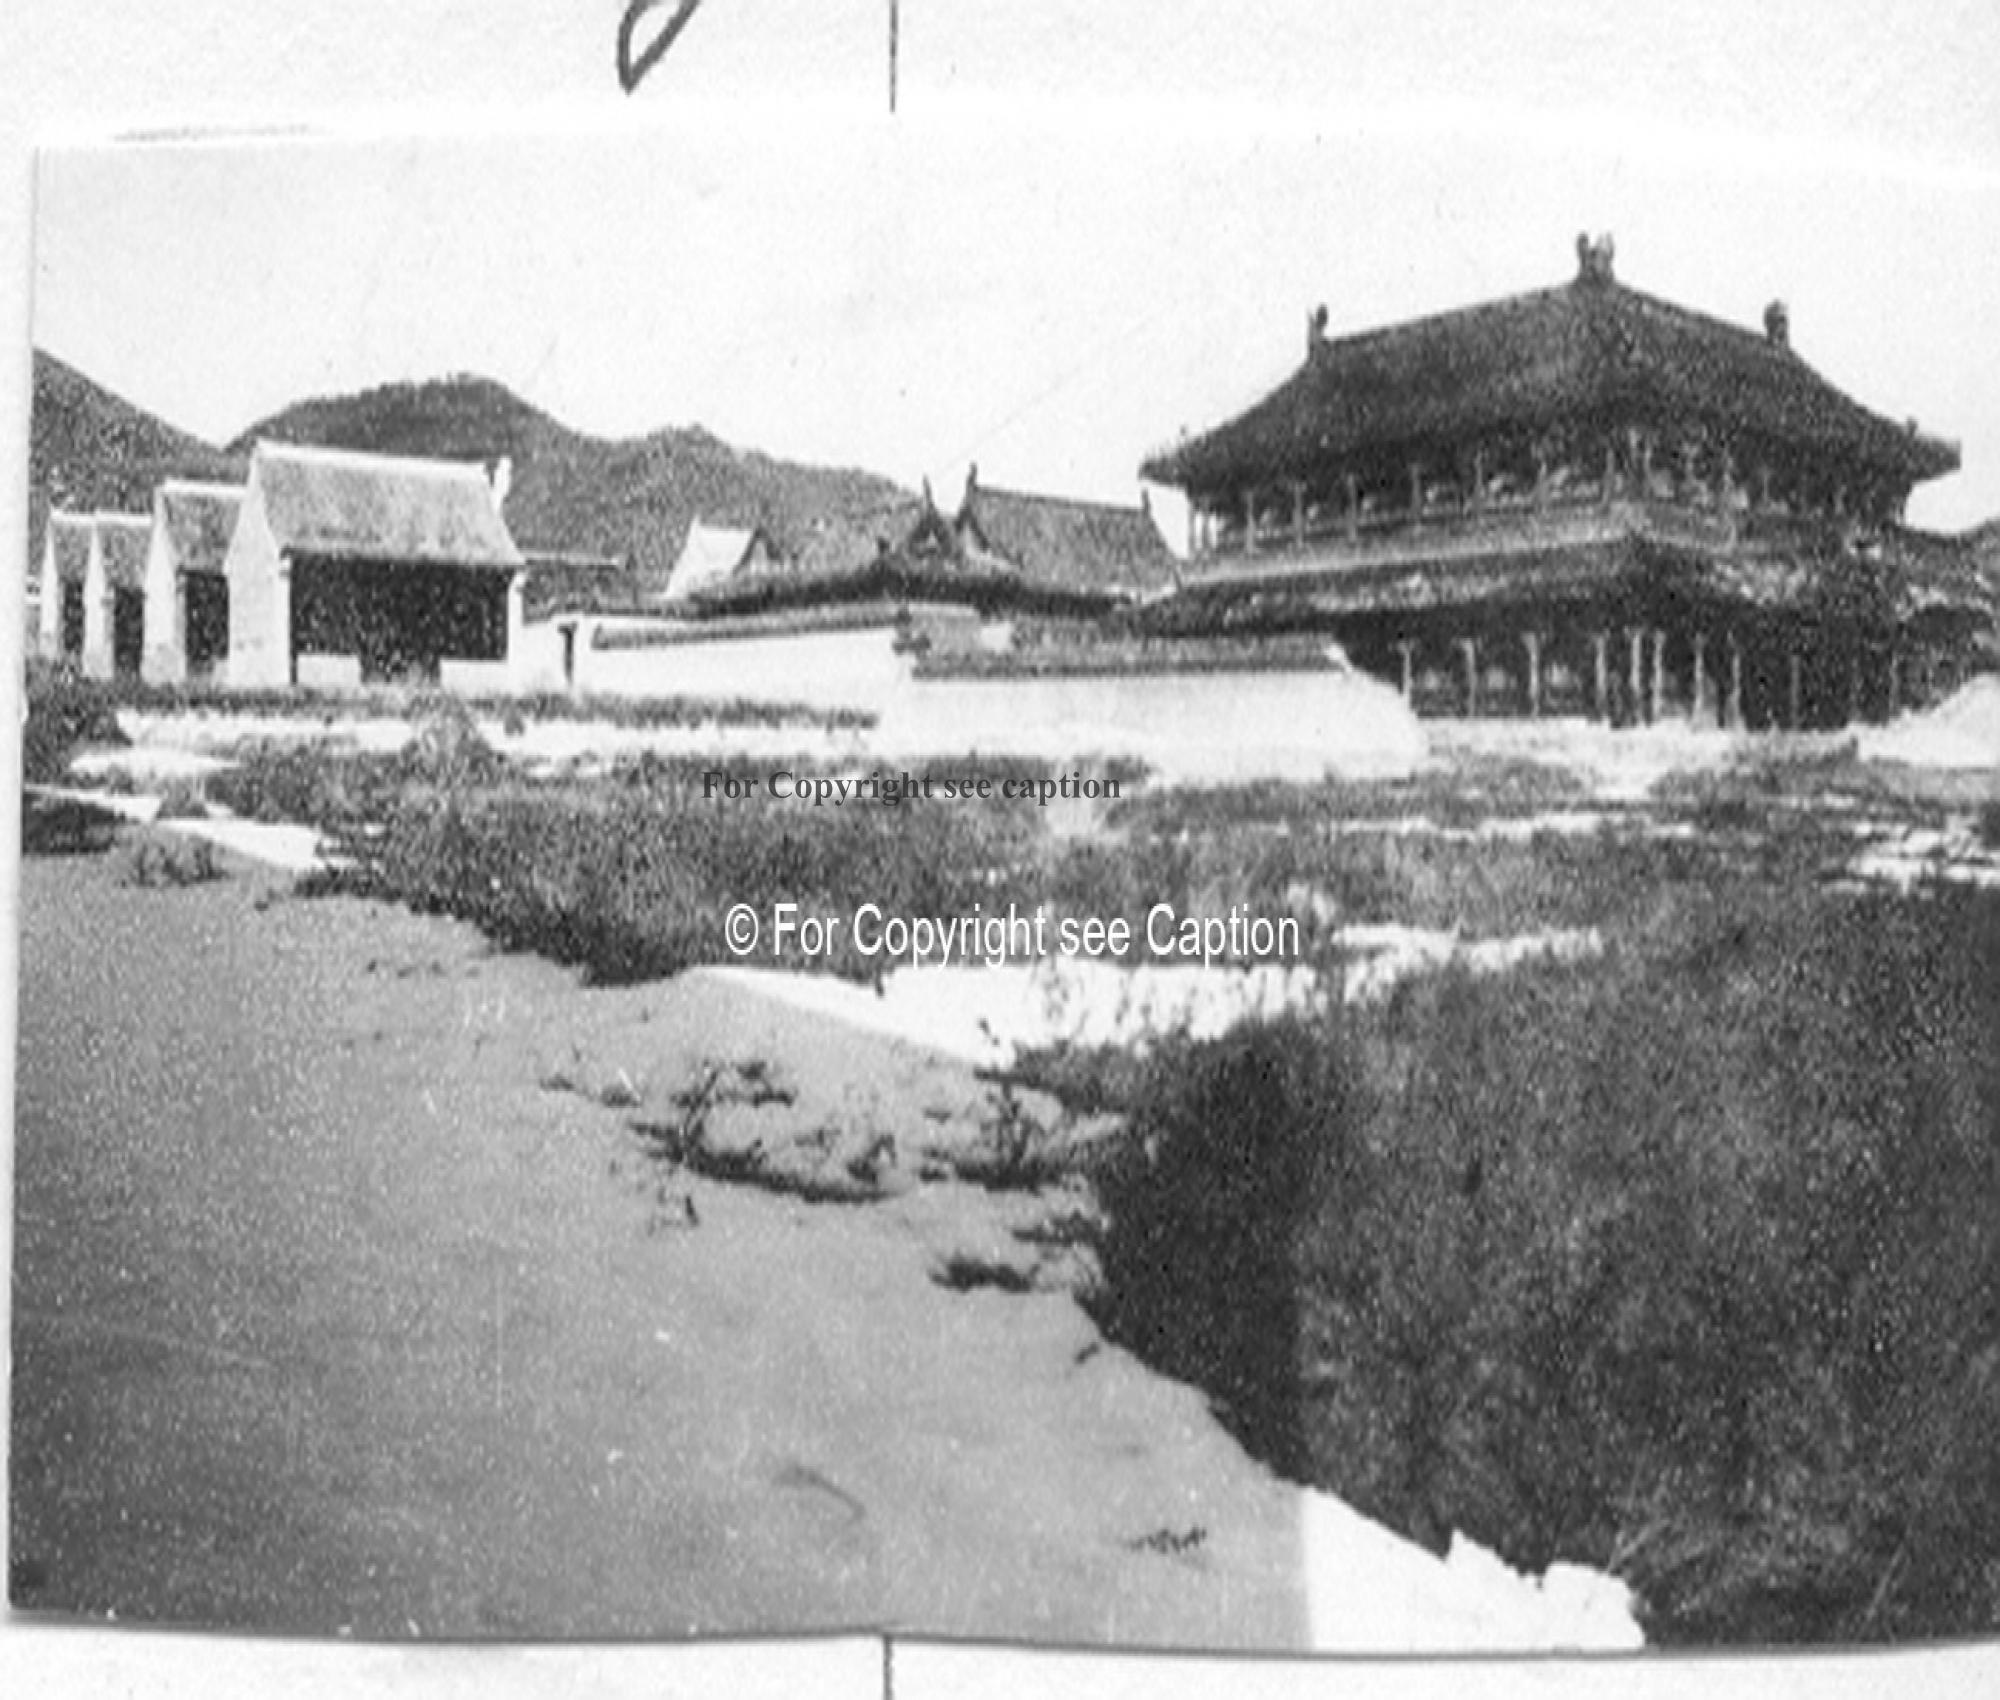 The main assembly hall and the Western part of the monastery. Film Archives K-23667